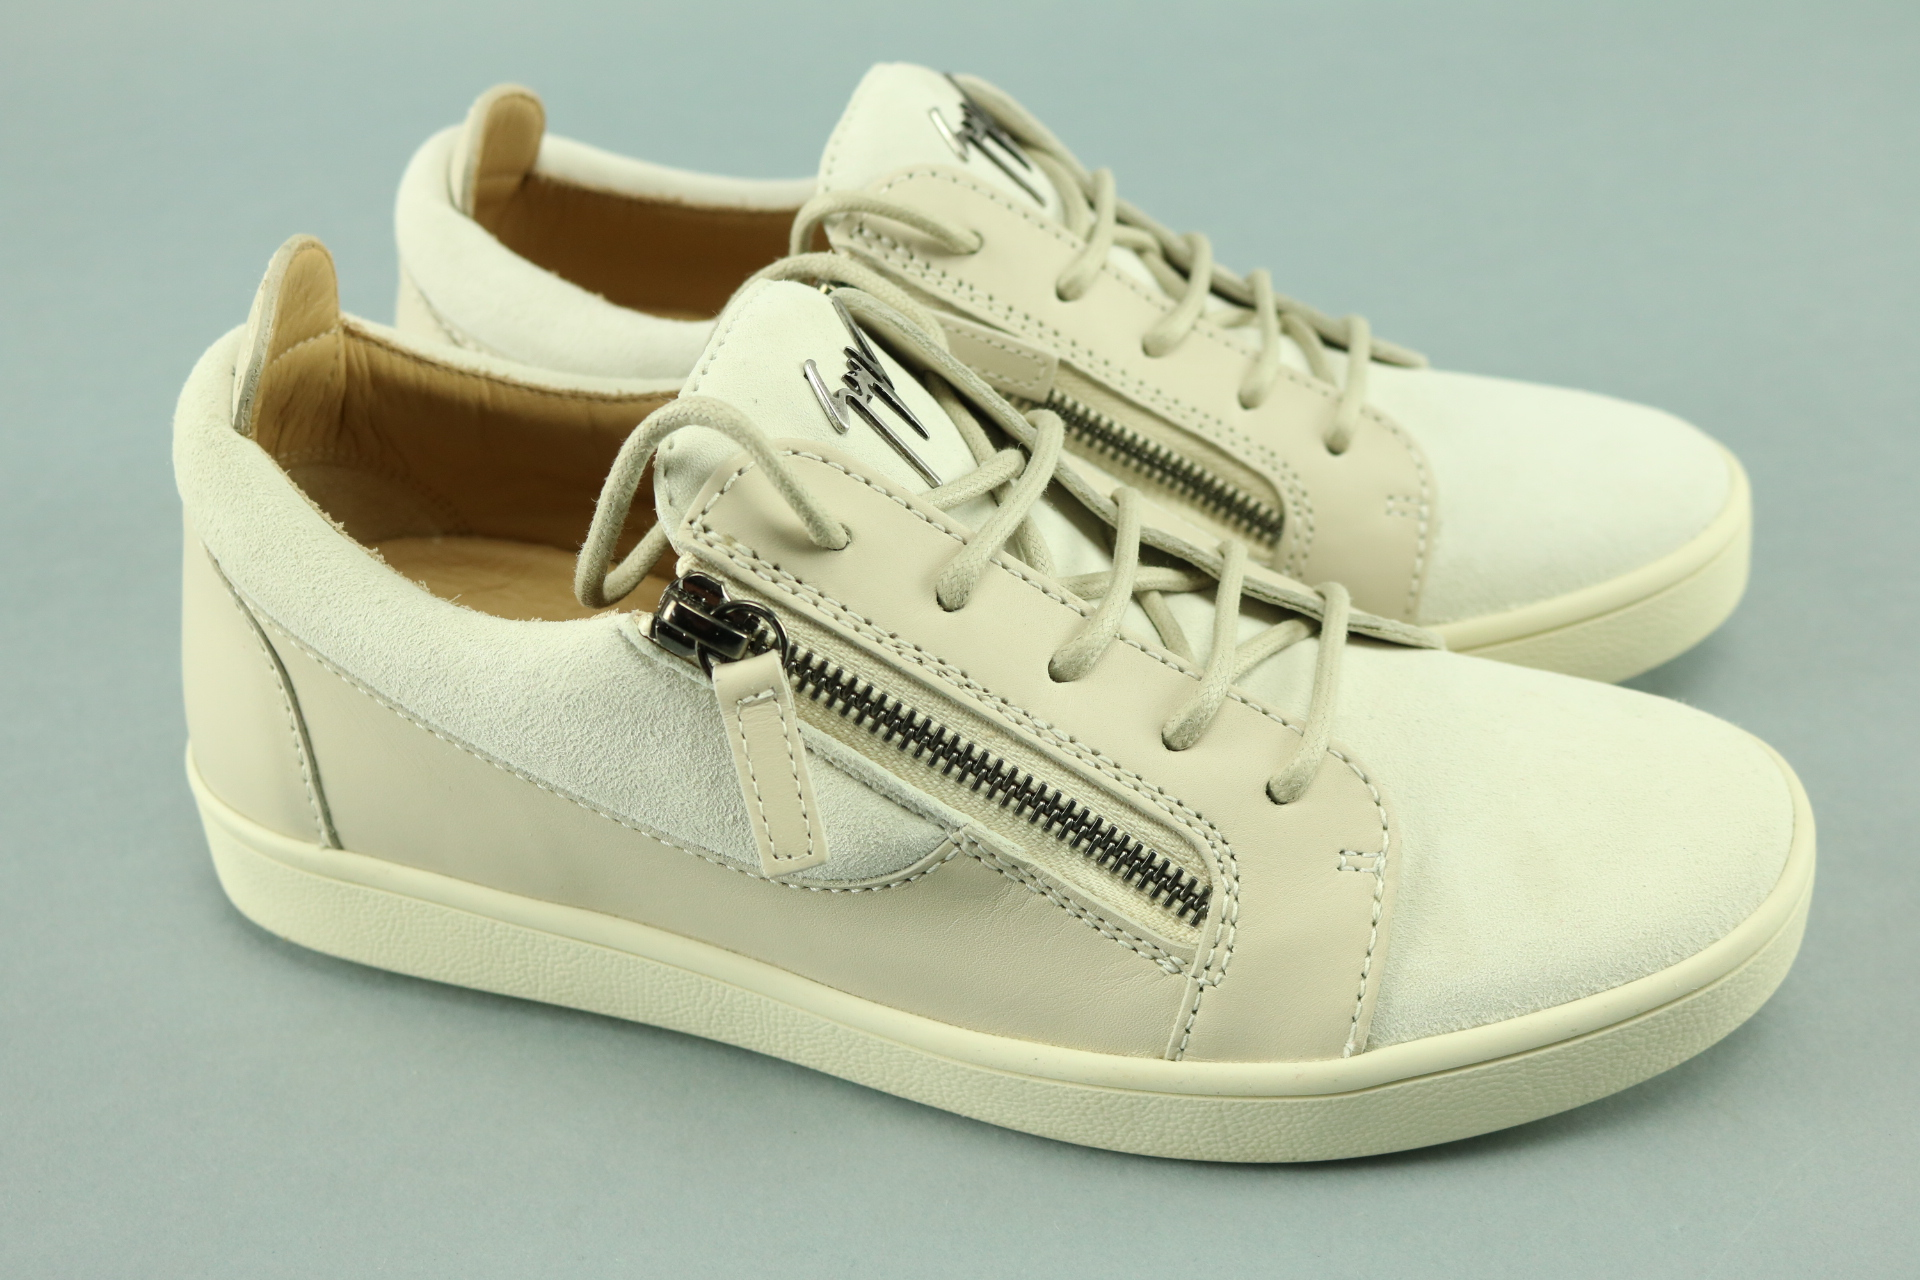 f7f9f3f4bb98 Details about Giuseppe Zanotti Men s London Double-Zip Leather Suede Low-Top  Sneaker Size 38.5